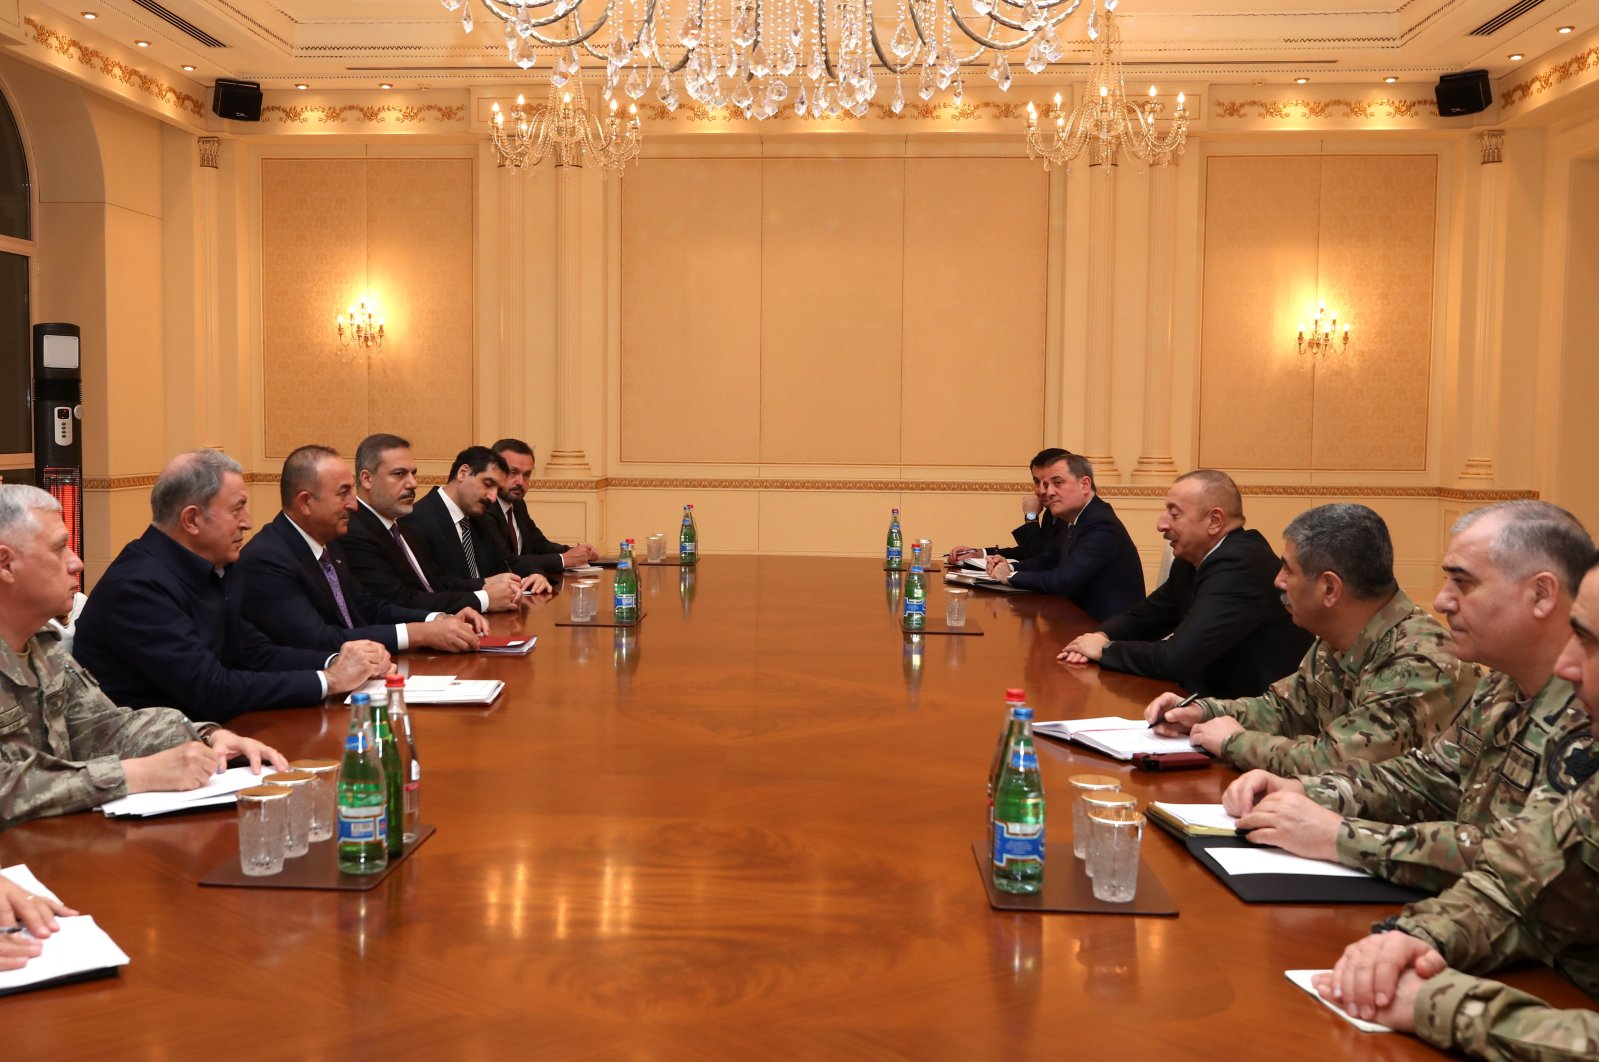 Turkish Defense Minister Hulusi Akar, Foreign Minister Mevlüt Çavuşoğlu and military commanders attend a meeting with Azerbaijani President Ilham Aliyev and military officials in Baku on Nov. 10, 2020.(AA Photo)